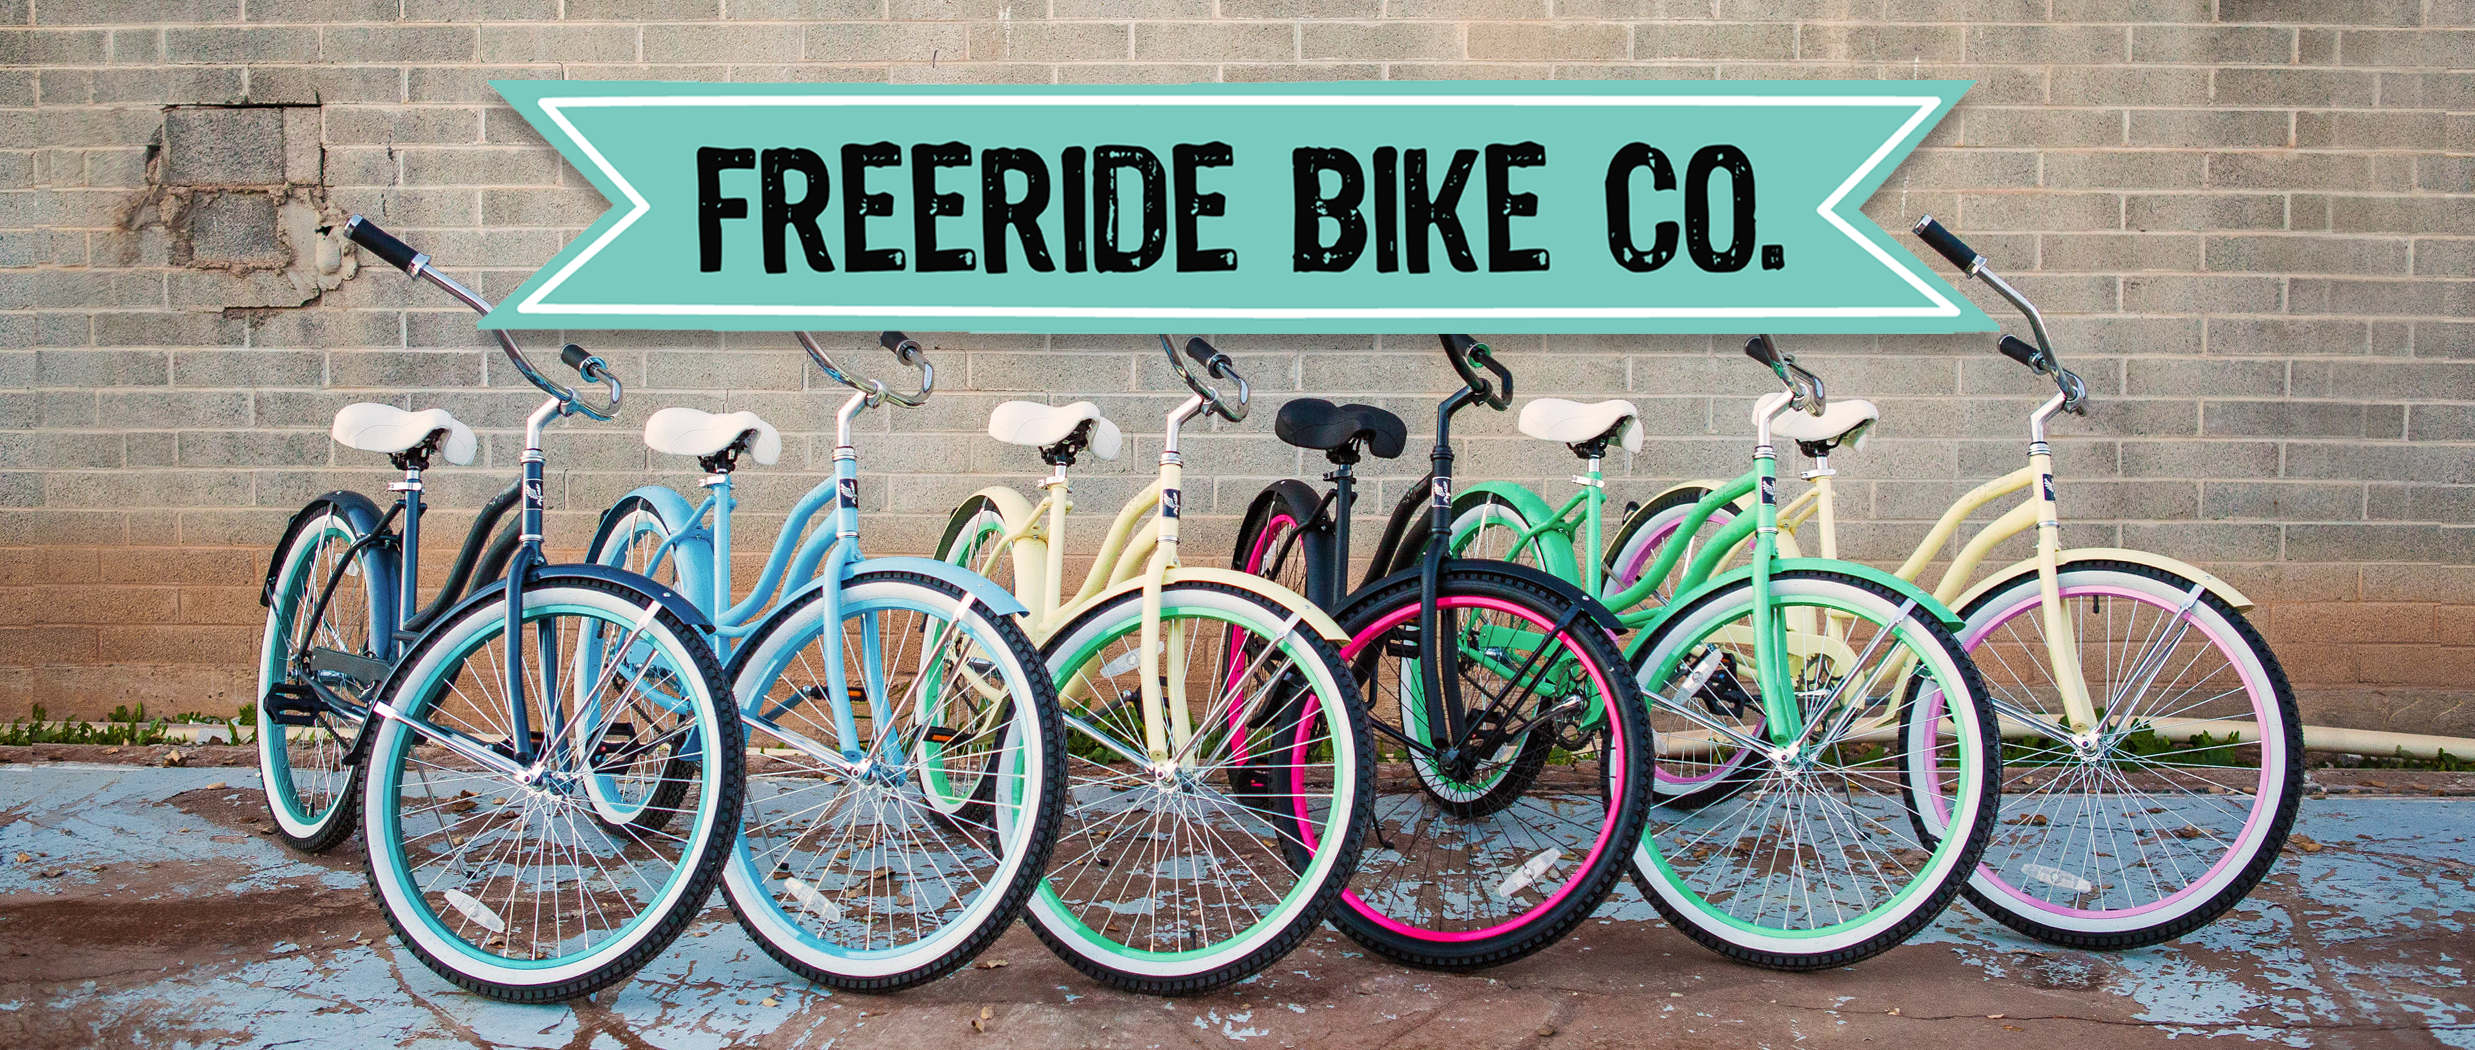 Freeride Bike Co.